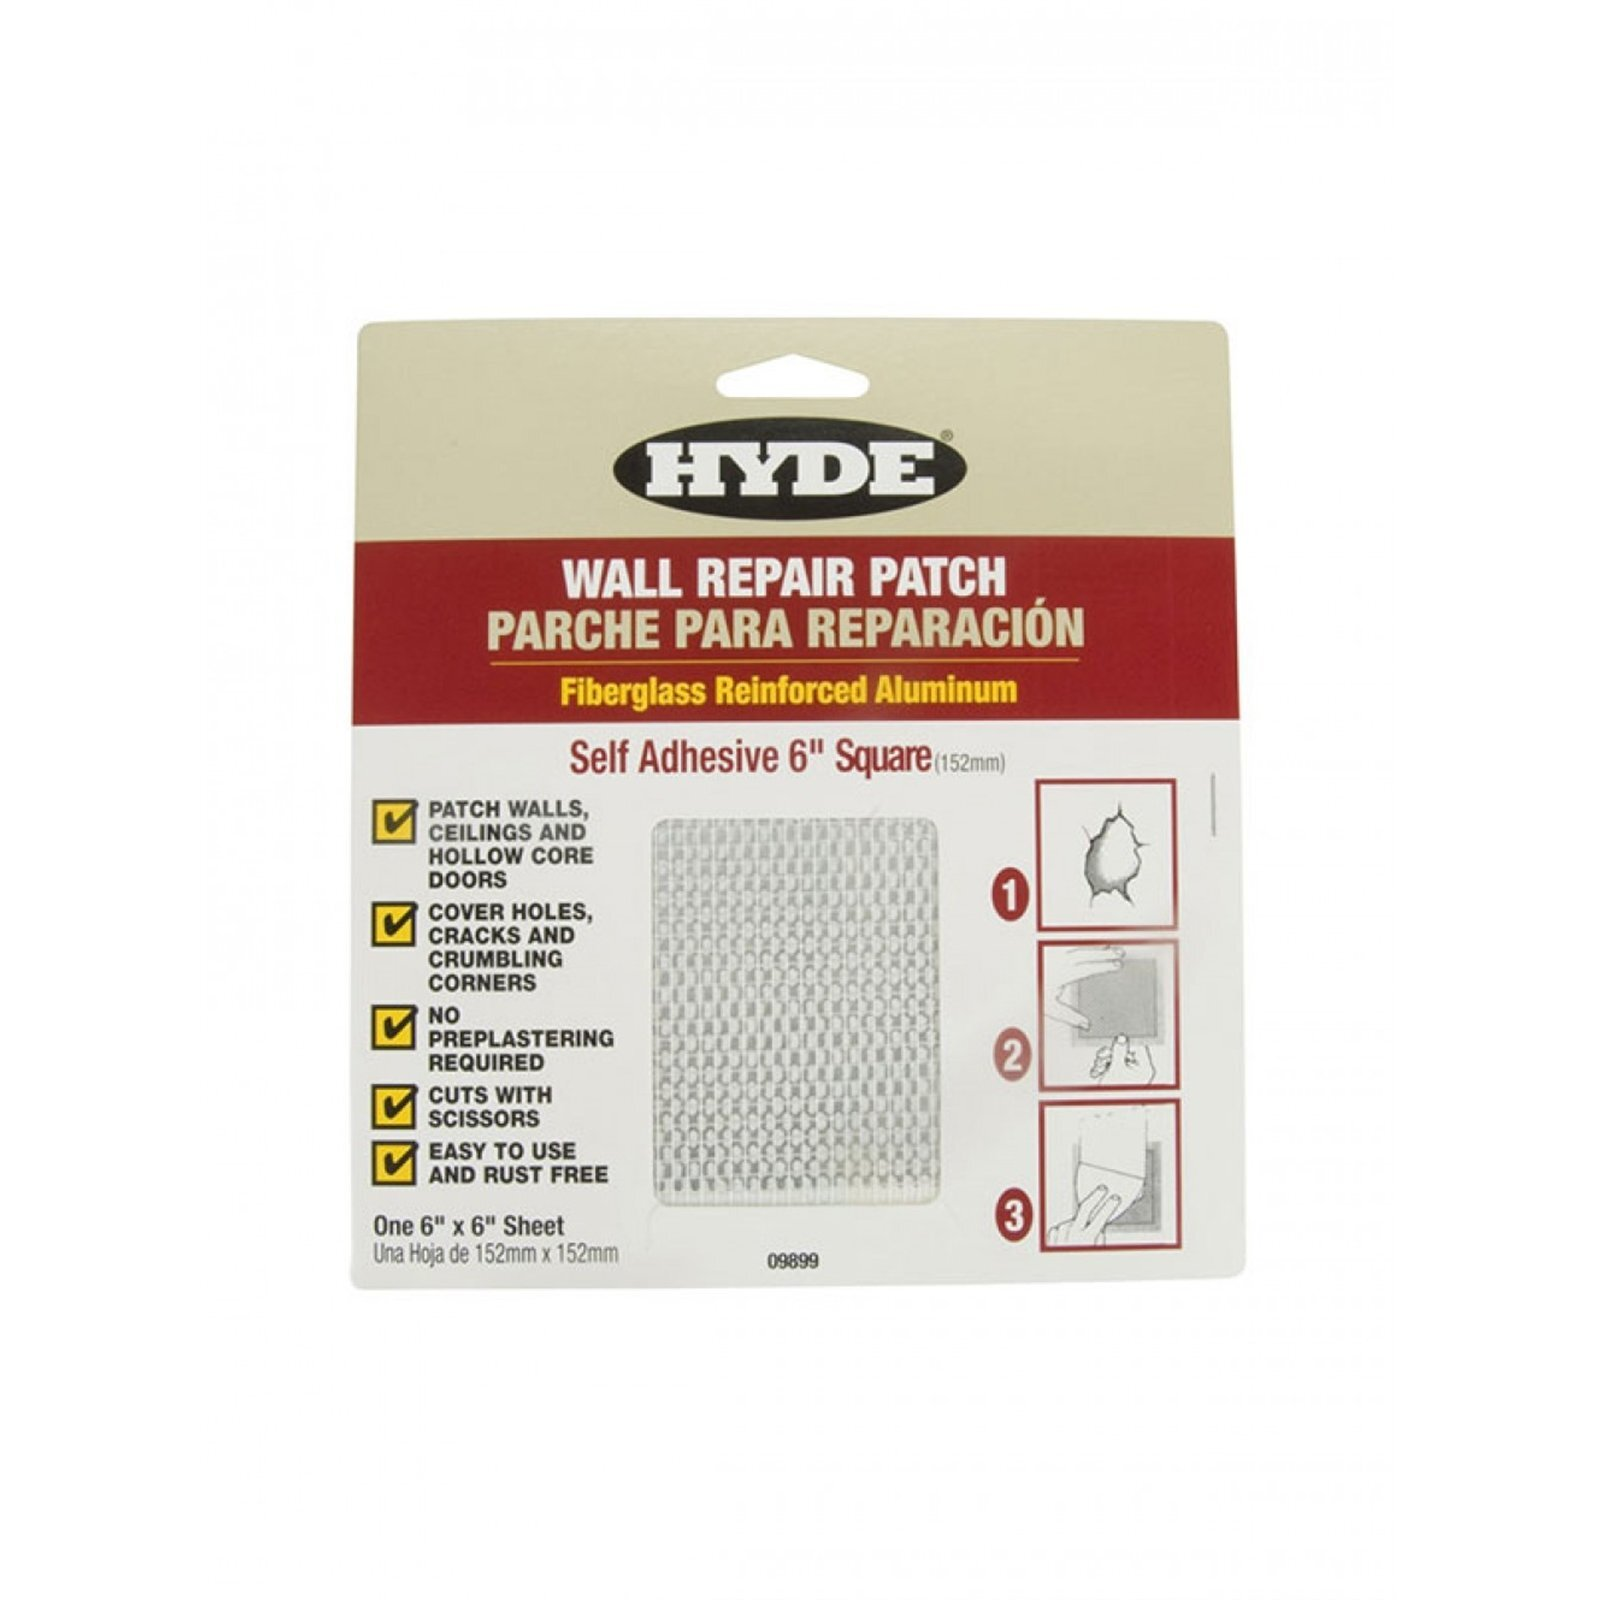 Hyde 152mm x 152mm Self Adhesive Wall Patch